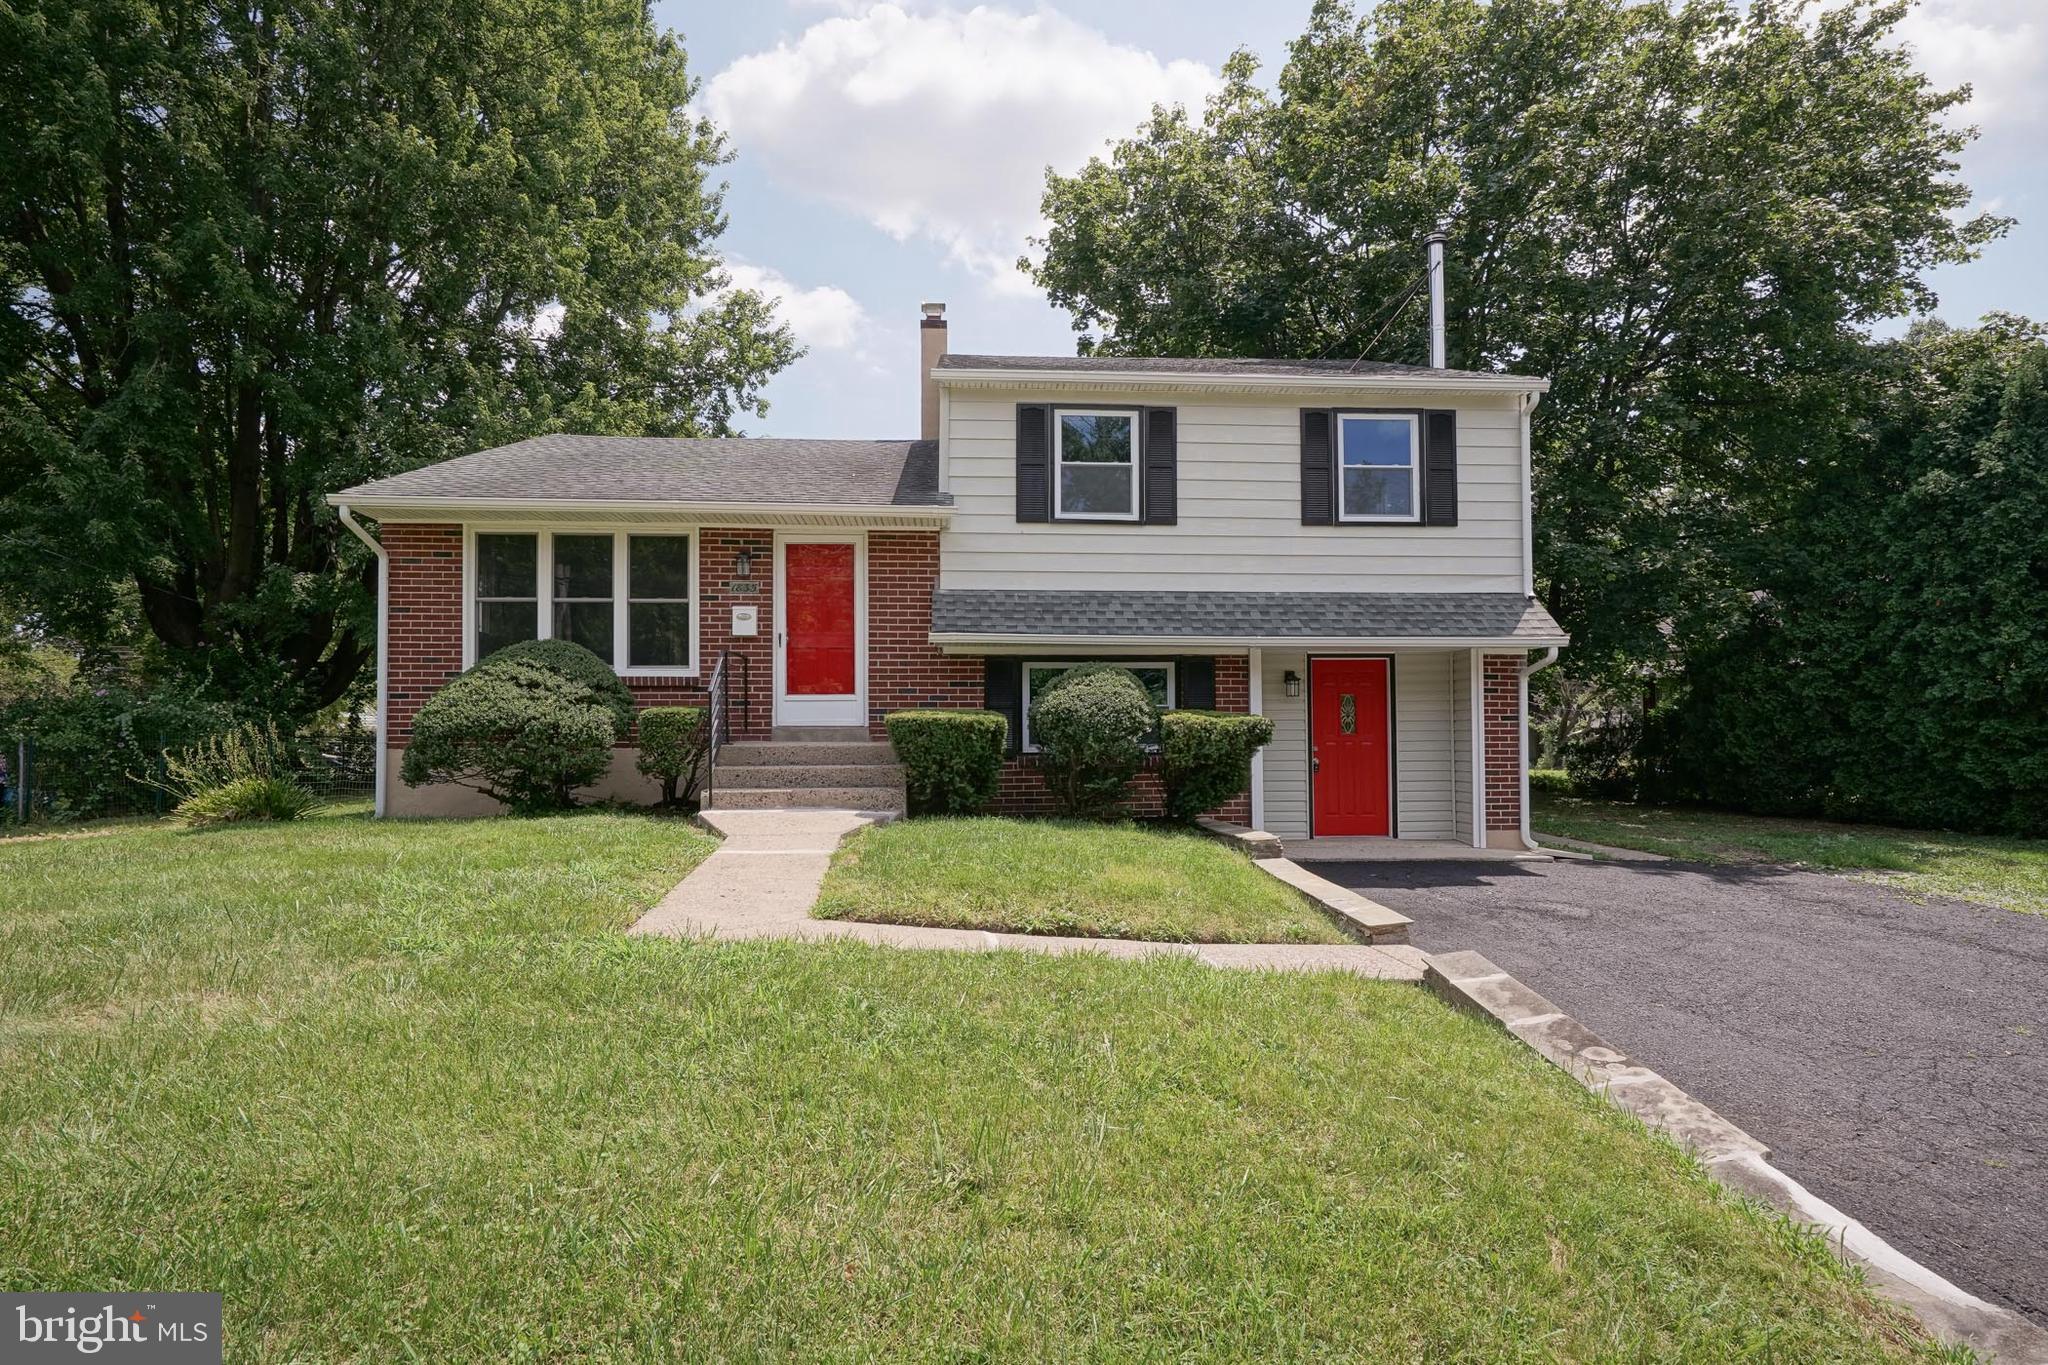 1835 TWINING ROAD, WILLOW GROVE, PA 19090